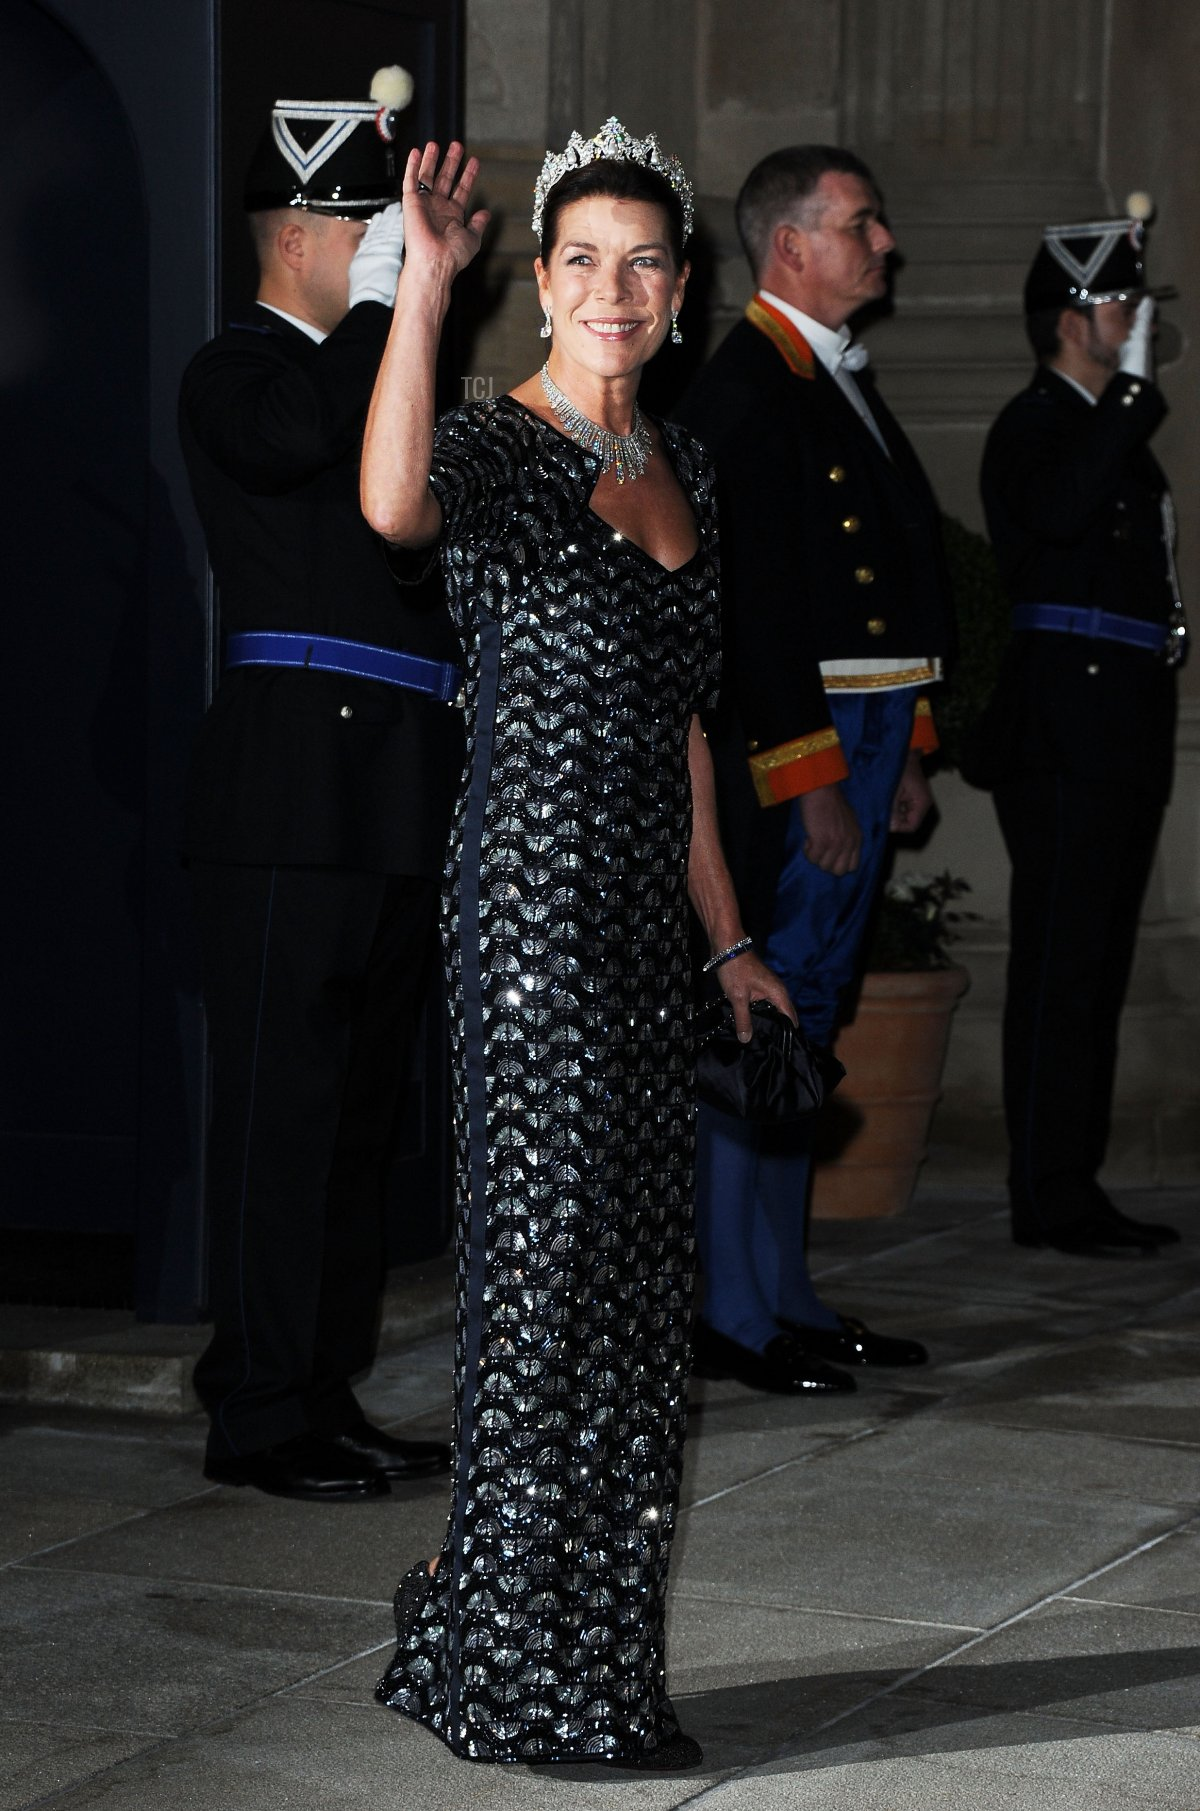 Princess Caroline of Hannover attends the Gala dinner for the wedding of Prince Guillaume Of Luxembourg and Stephanie de Lannoy at the Grand-ducal Palace on October 19, 2012 in Luxembourg, Luxembourg. The 30-year-old hereditary Grand Duke of Luxembourg is the last hereditary Prince in Europe to get married, marrying his 28-year old Belgian Countess bride in a lavish 2-day ceremony